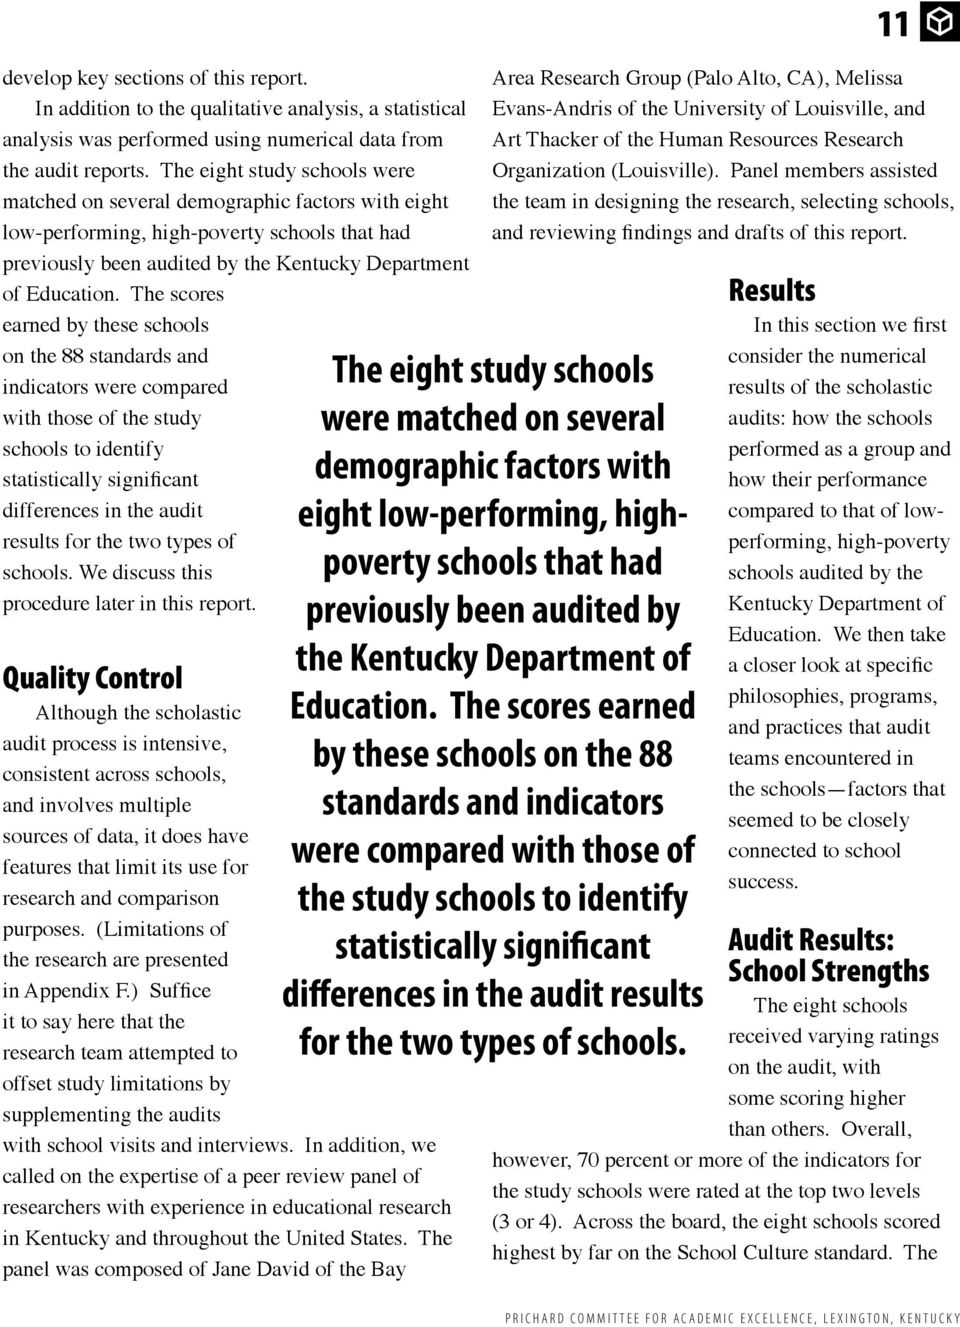 The scores earned by these schools on the 88 standards and indicators were compared with those of the study schools to identify statistically significant differences in the audit results for the two